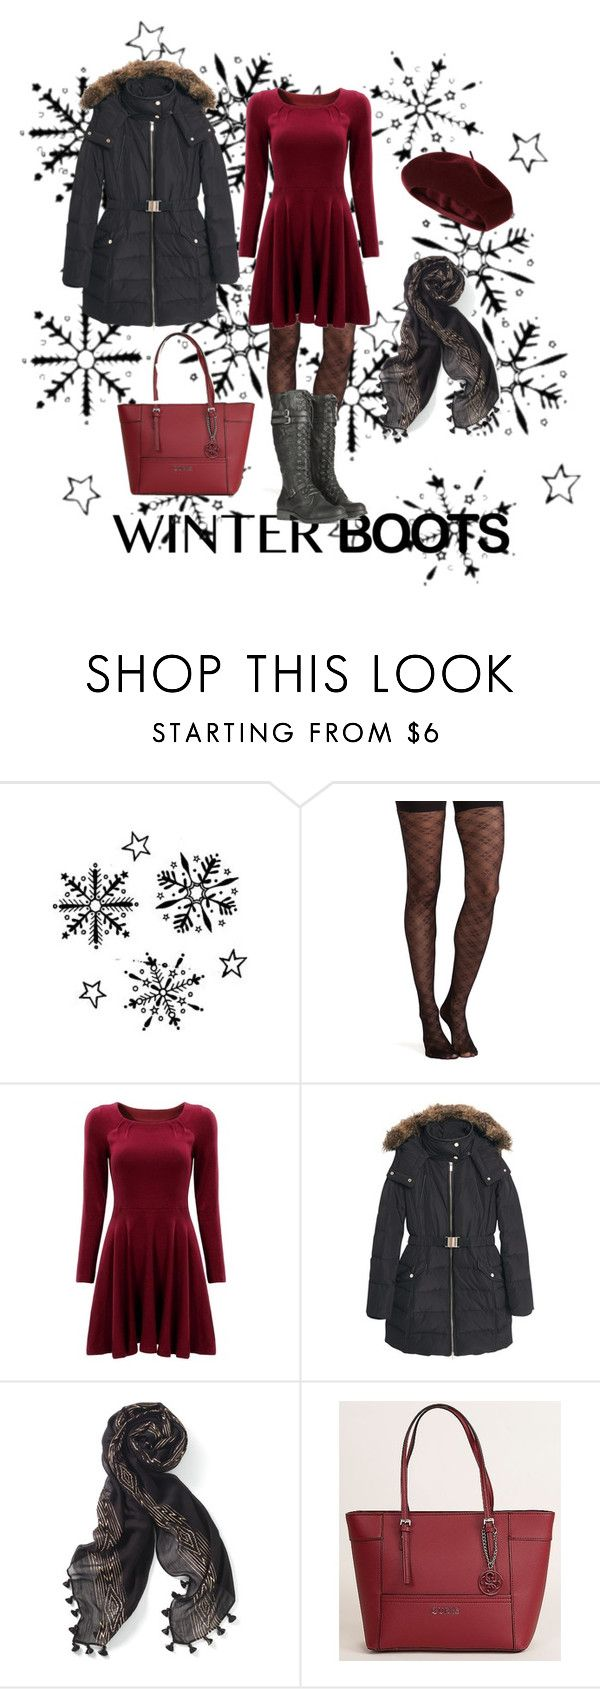 """""""winter boots"""" by liliana-vaccara ❤ liked on Polyvore featuring SPANX, Retrò, MANGO, Stella & Dot, GUESS and Accessorize"""